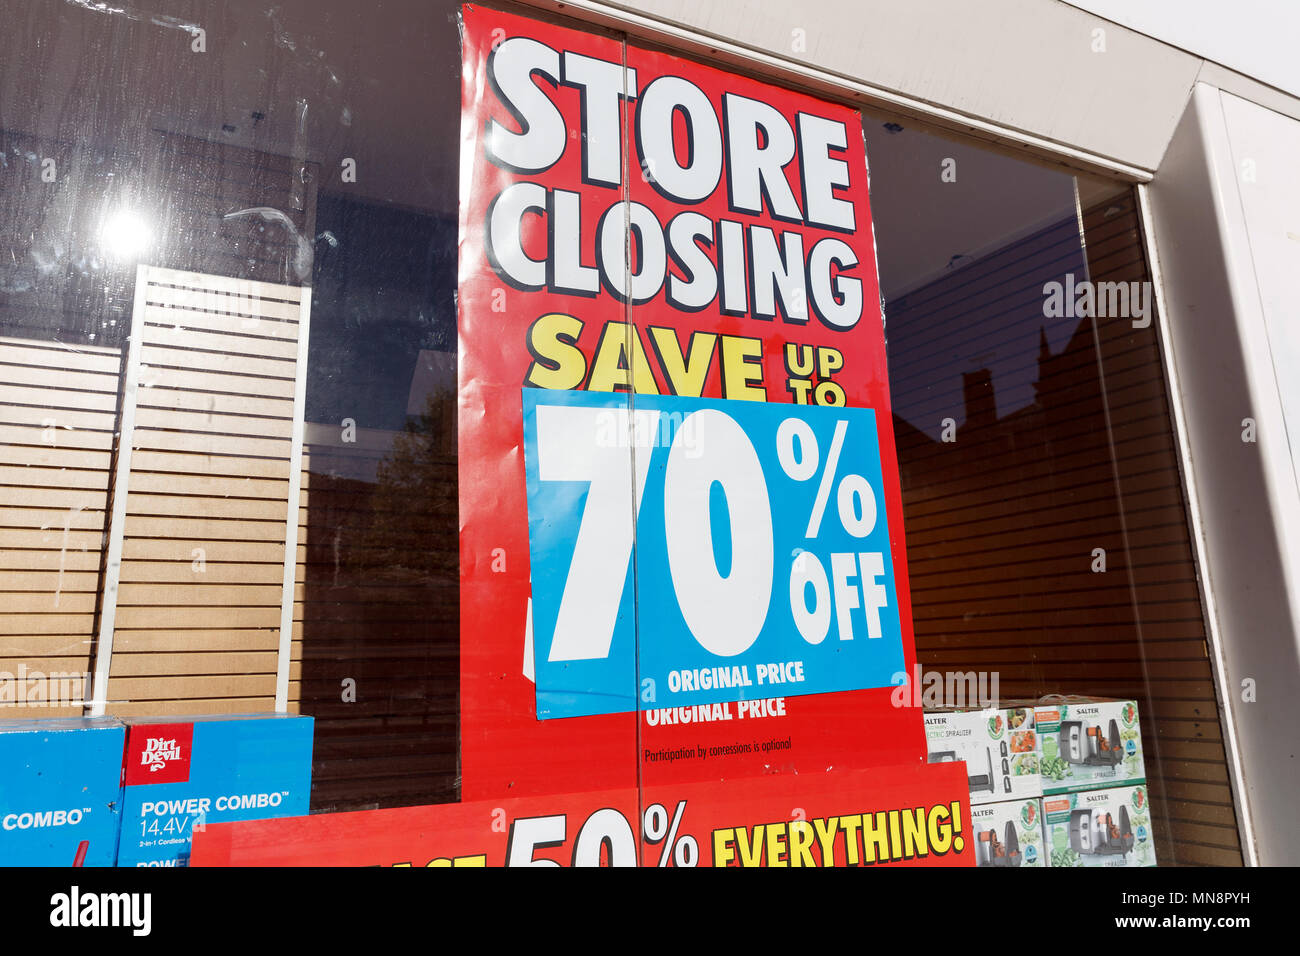 A high street store advertising a store closing down sale with up to 70% off. - Stock Image